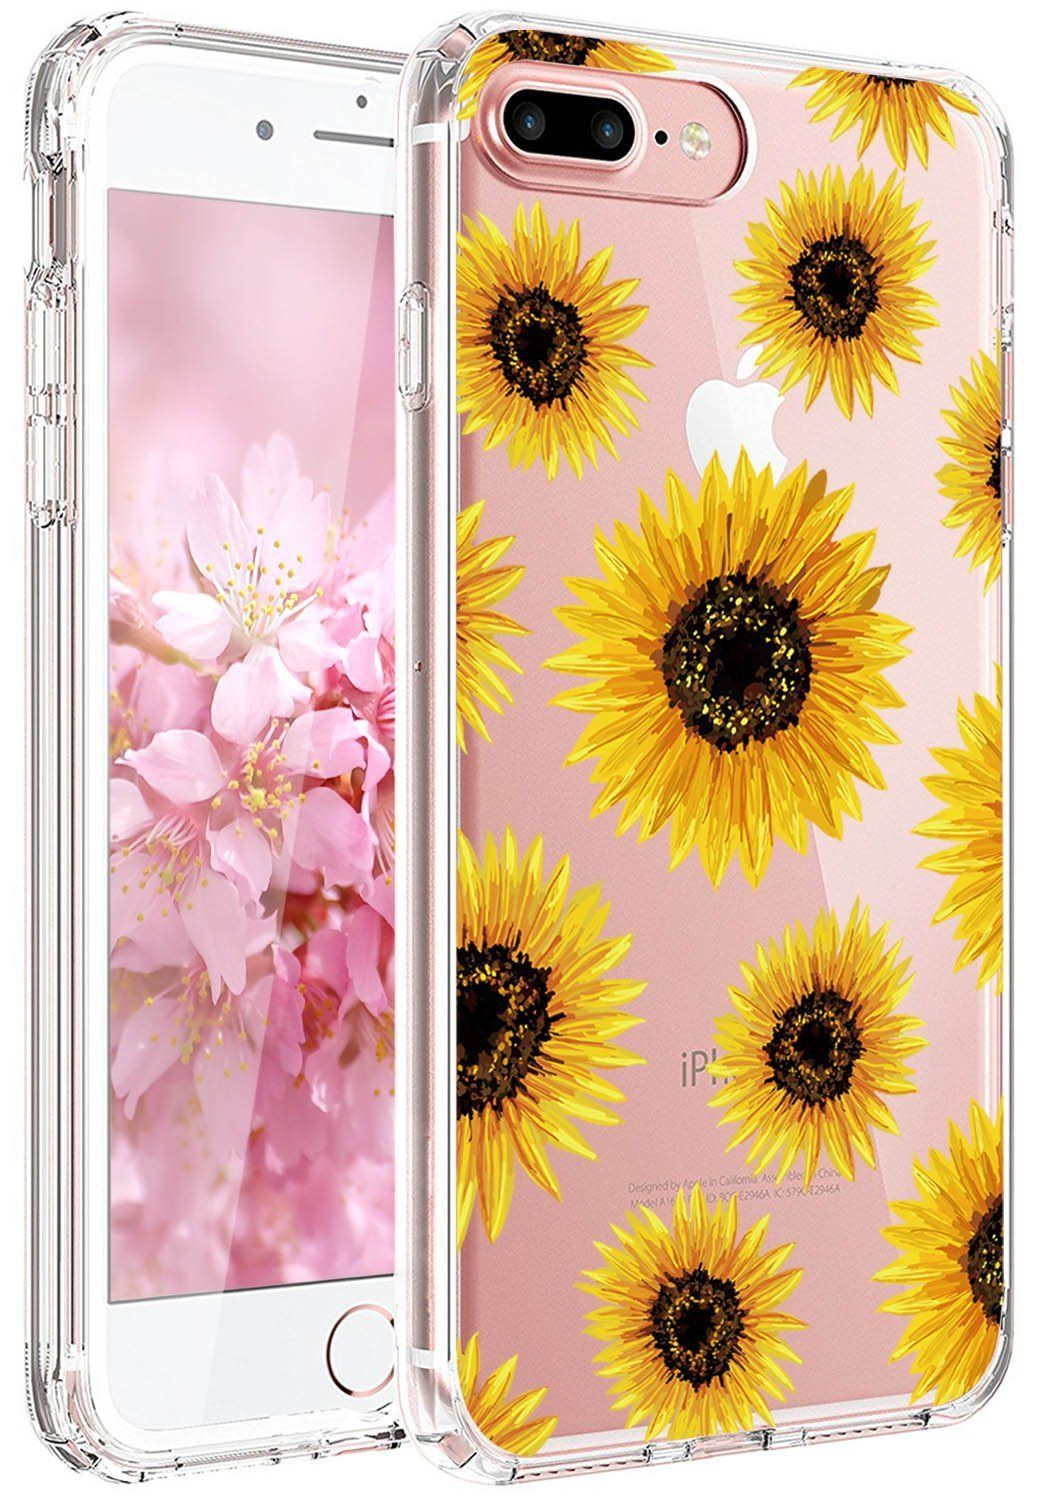 Sun Flowers Phone Case For Girls Iphone 6 Floral Iphone Case Retro Wallpaper Iphone Iphone